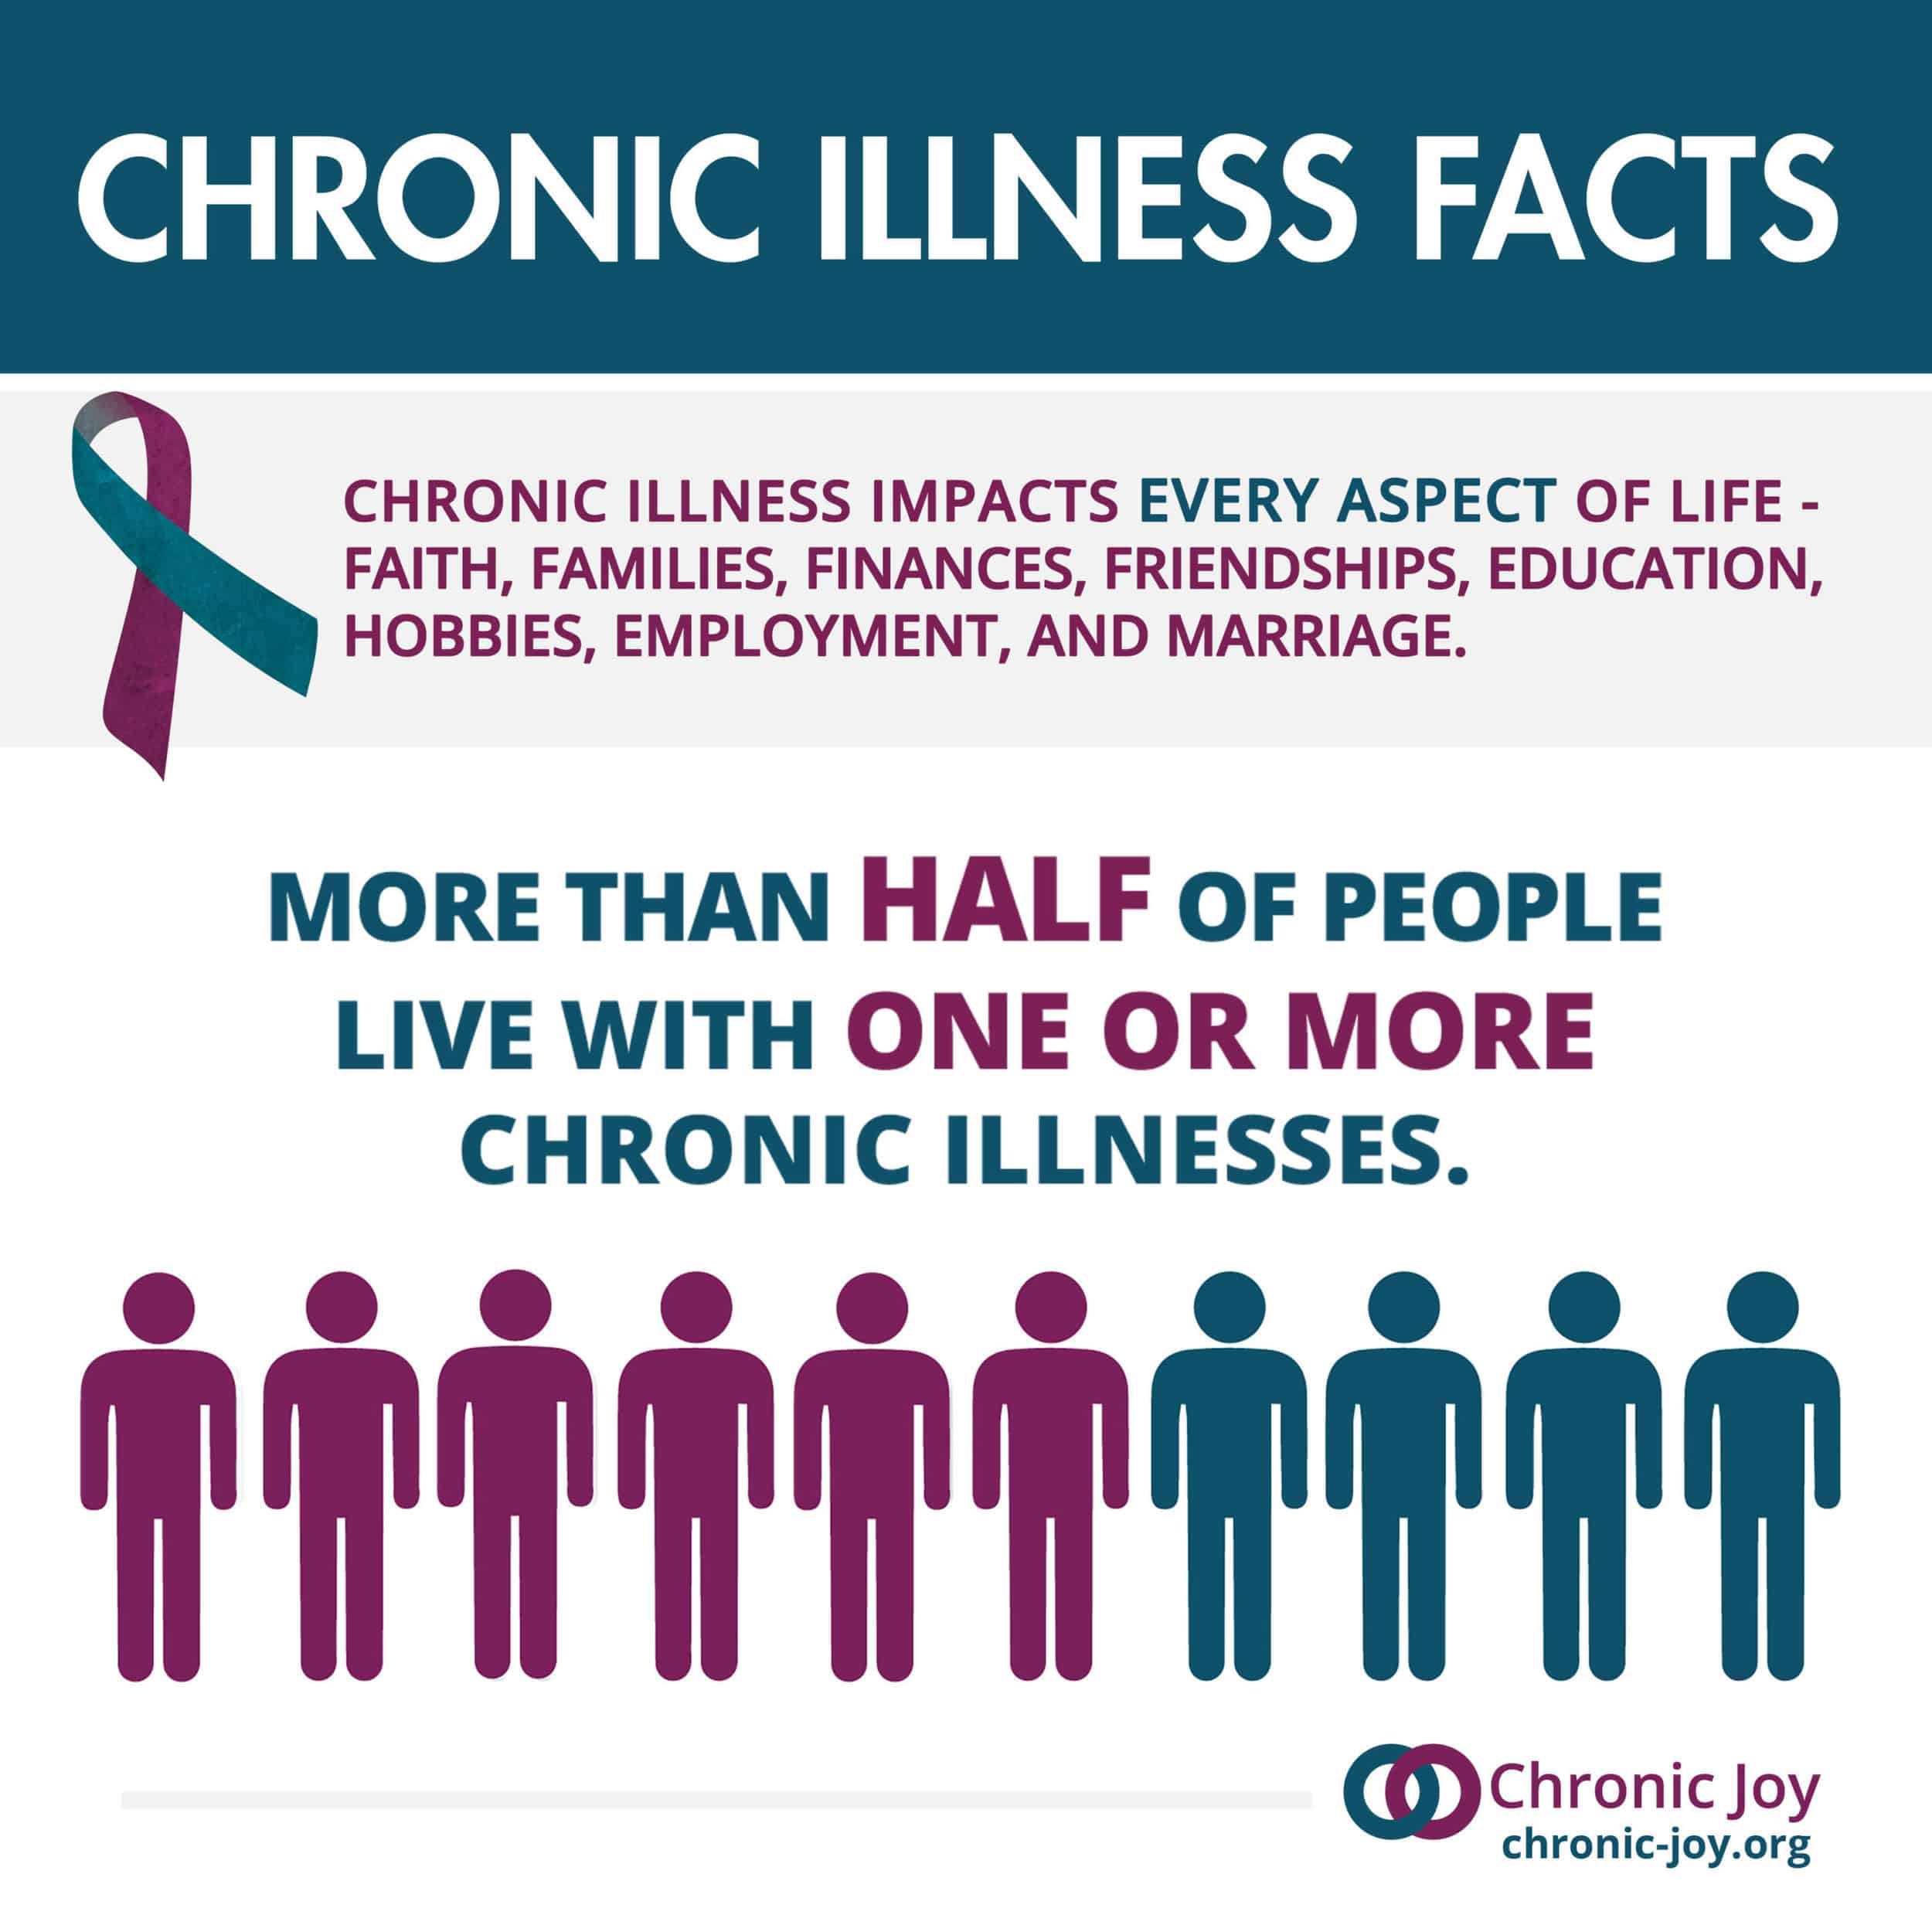 More than half of people live with chronic illness.